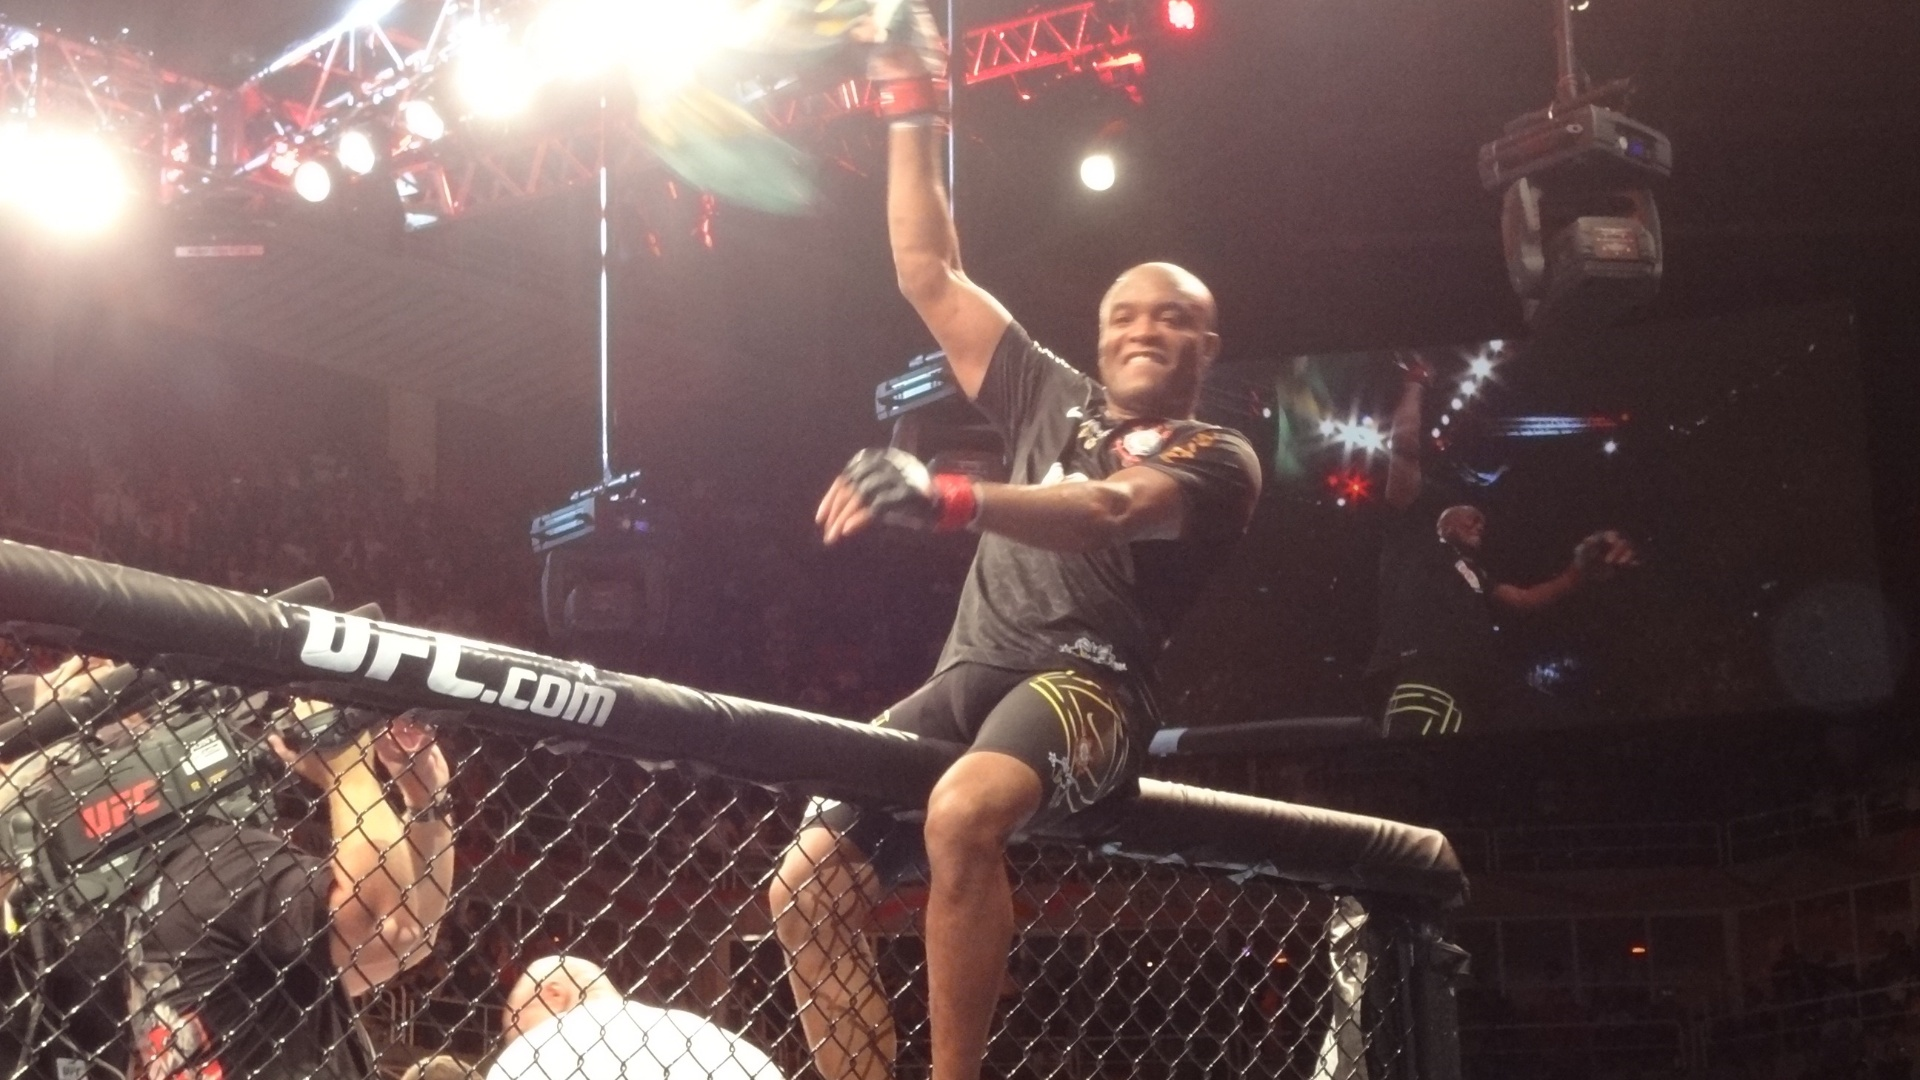 Anderson Silva sobe na grade do octgono e comemora vitria sobre o americano Stephan Bonnar